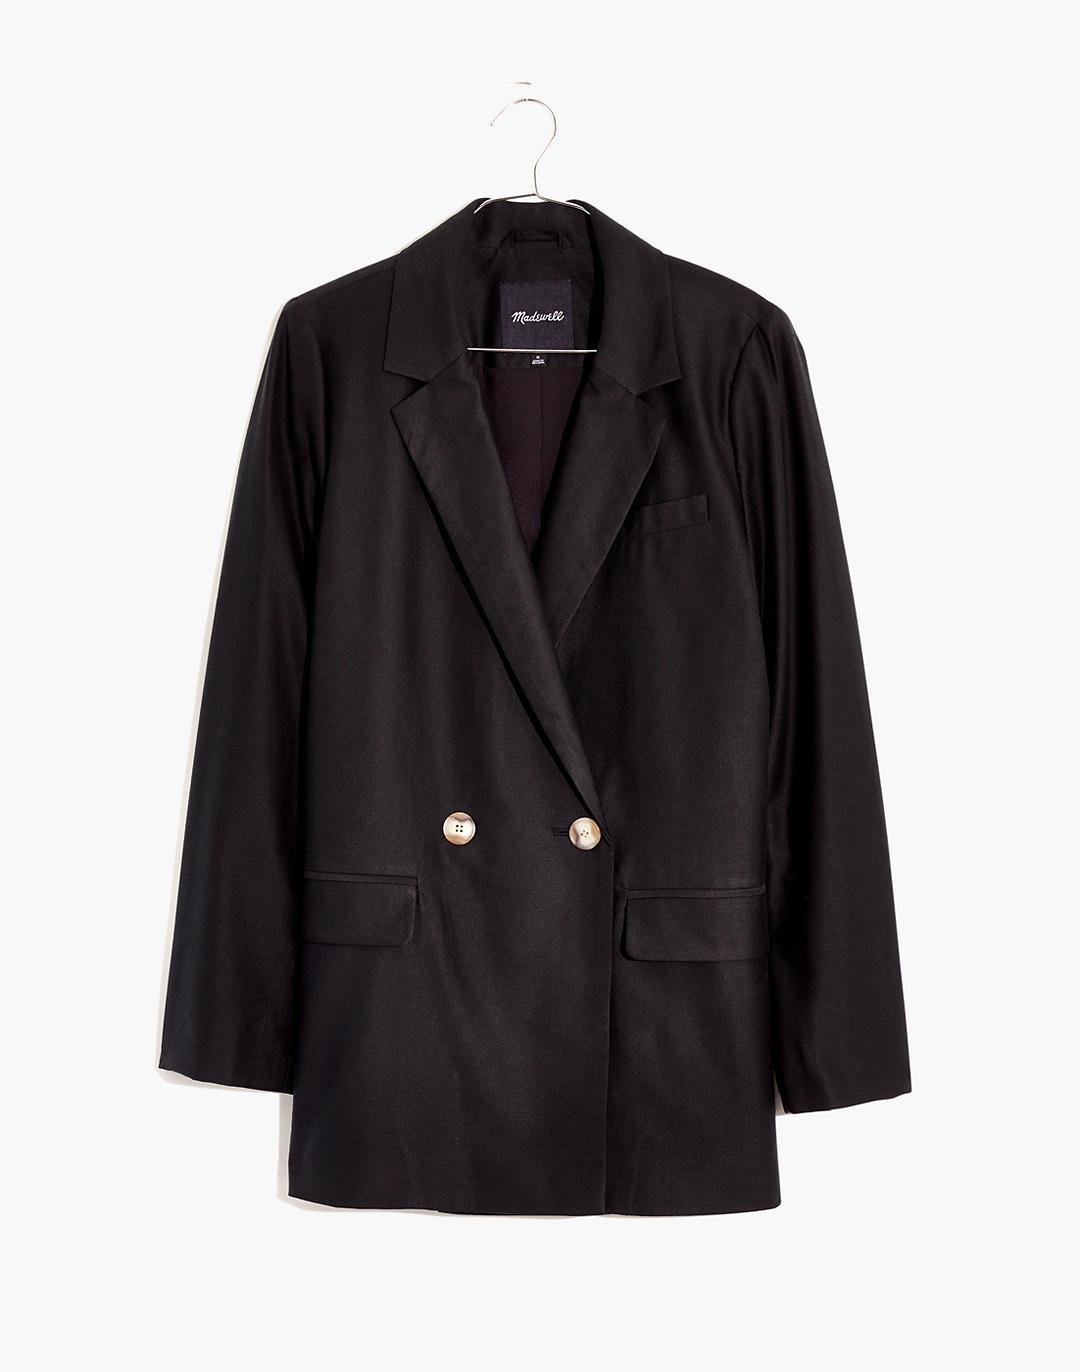 Caldwell Double-Breasted Blazer: Two Button Edition 2